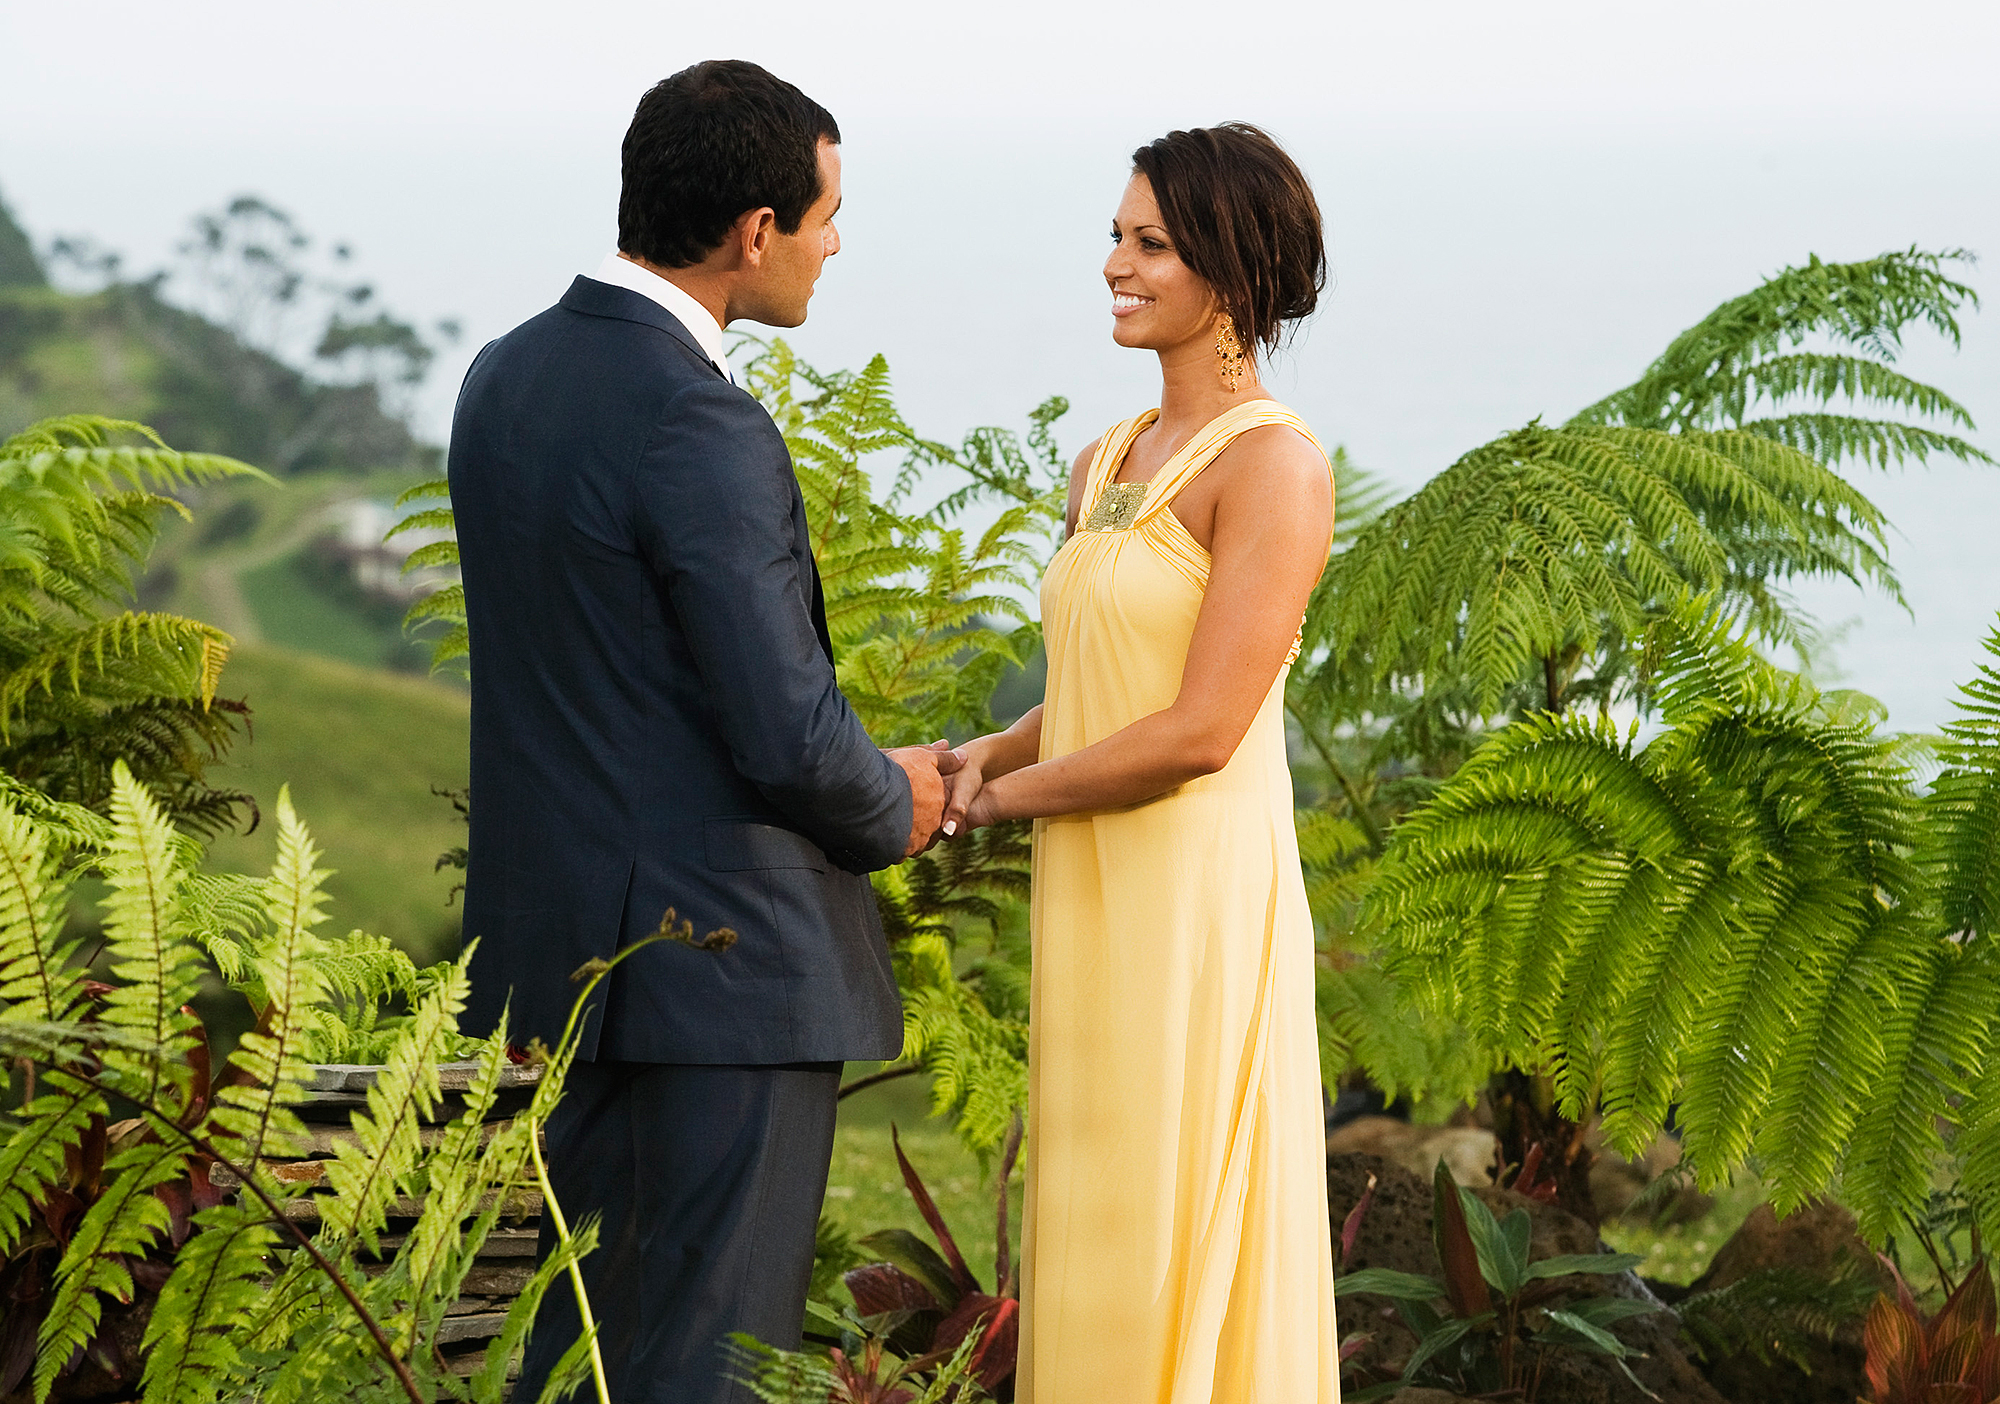 Melissa-Rycroft-on-The-Bachelor-Jason-Mesnick